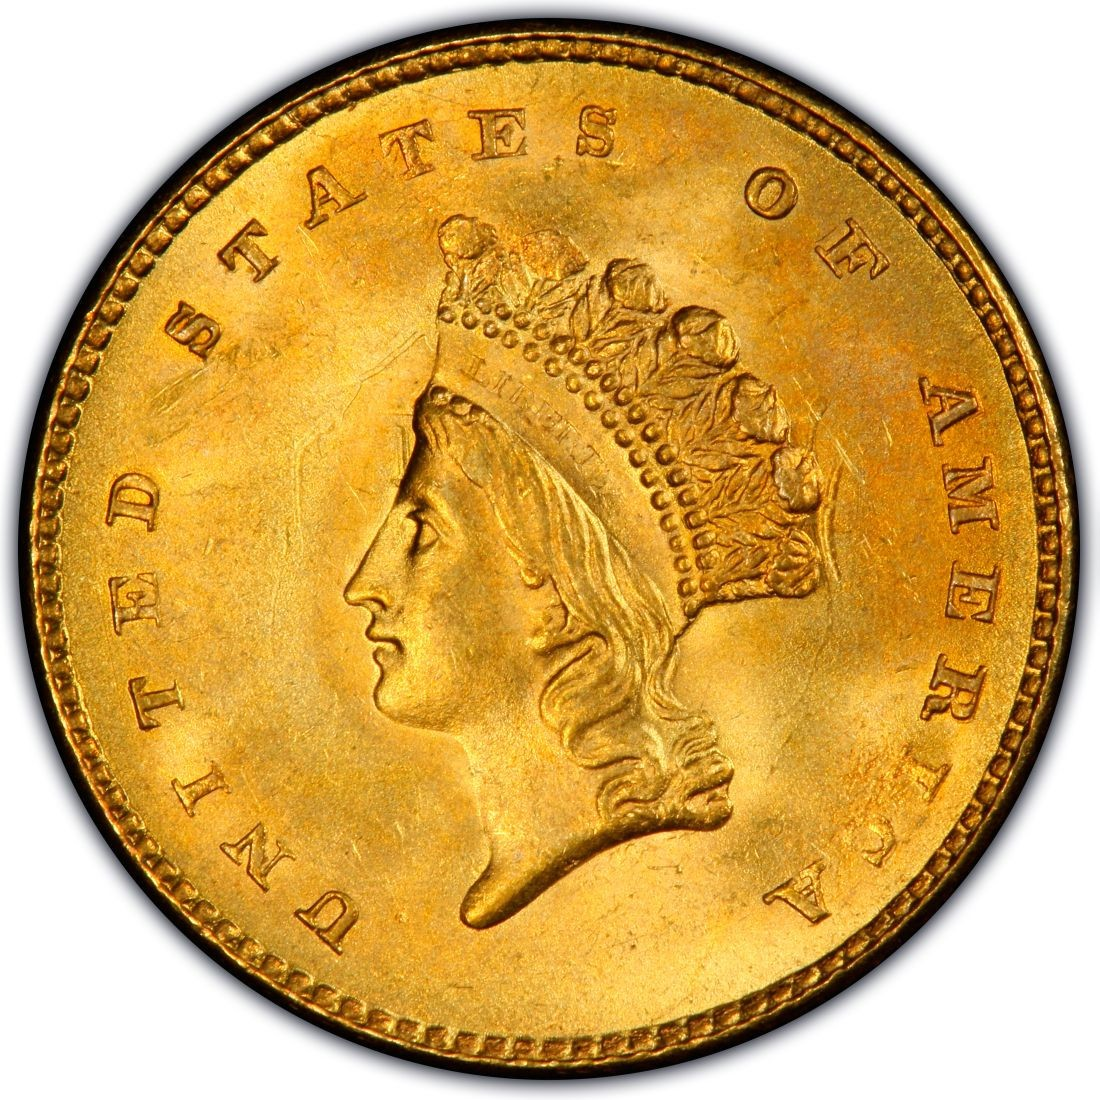 1854 Small Head Indian Princess Gold Dollar Values And